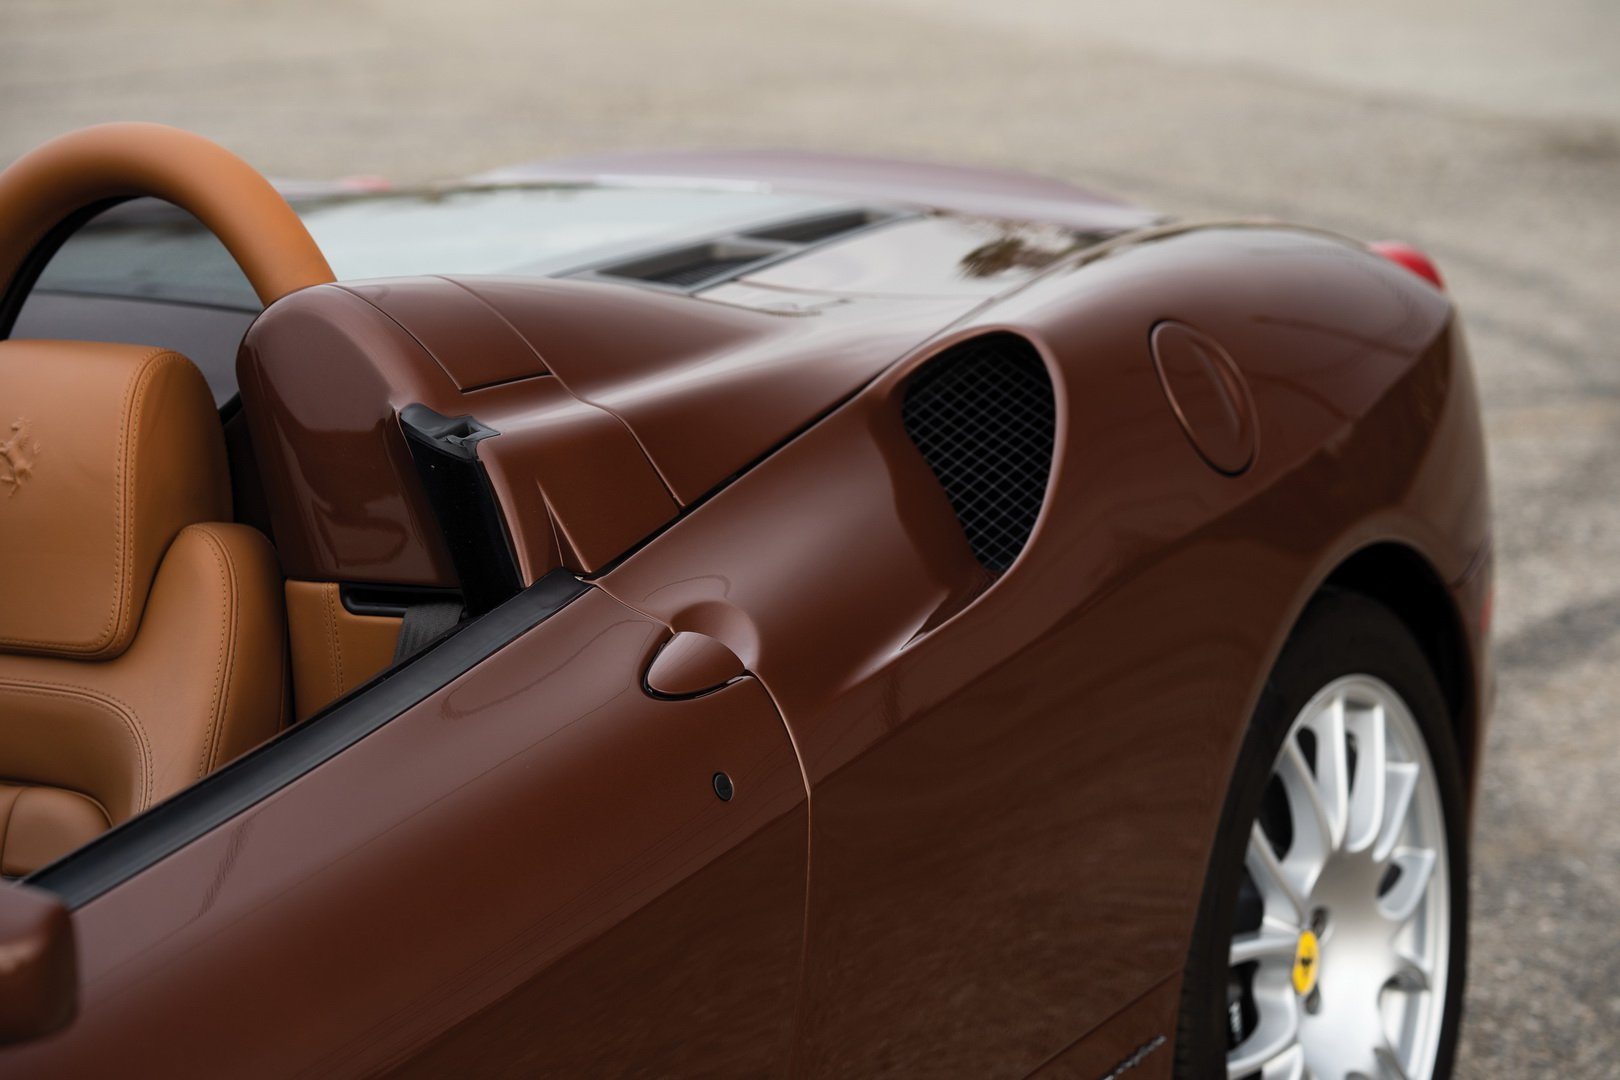 Ferrari F430 Spider in brown Classic Marrone color (14)